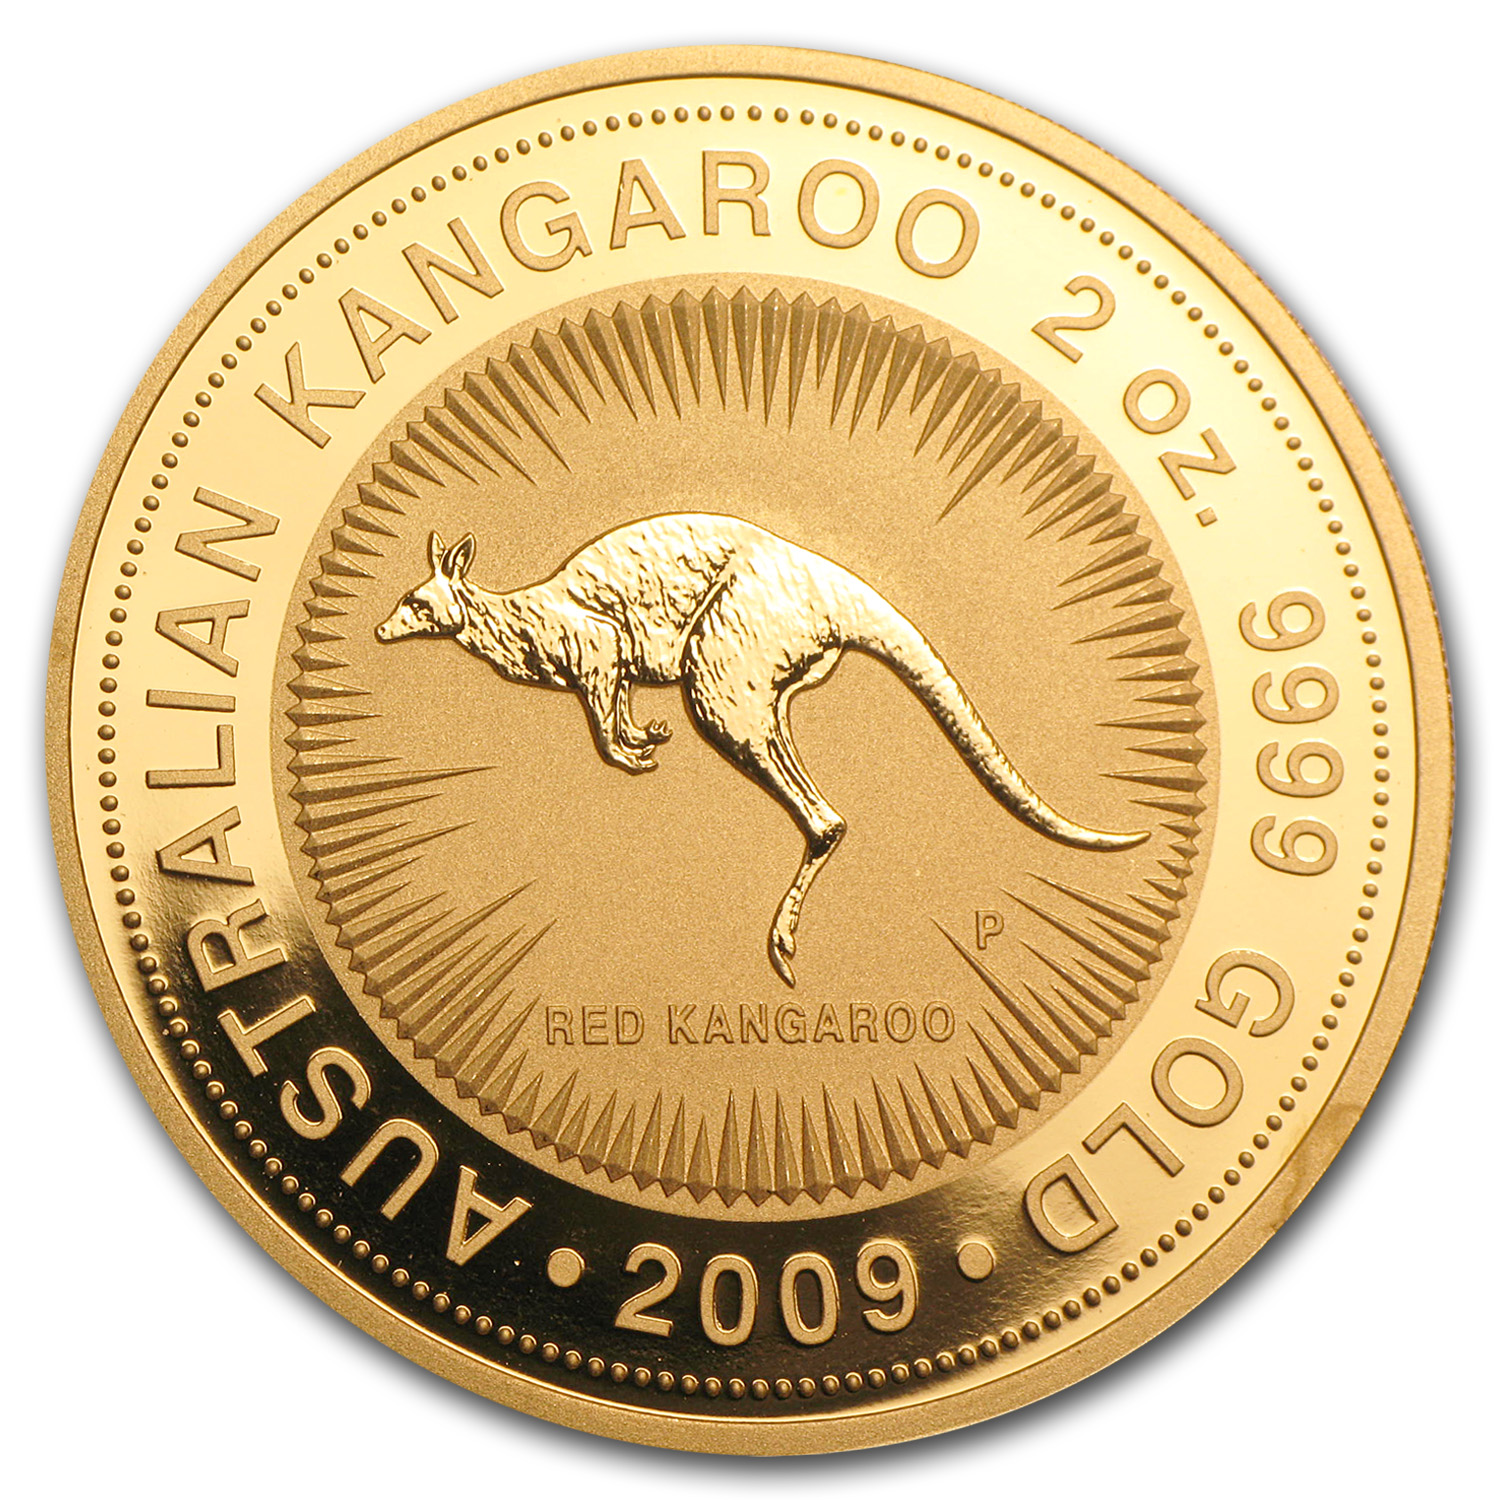 2009 2 oz Australian Gold Nugget